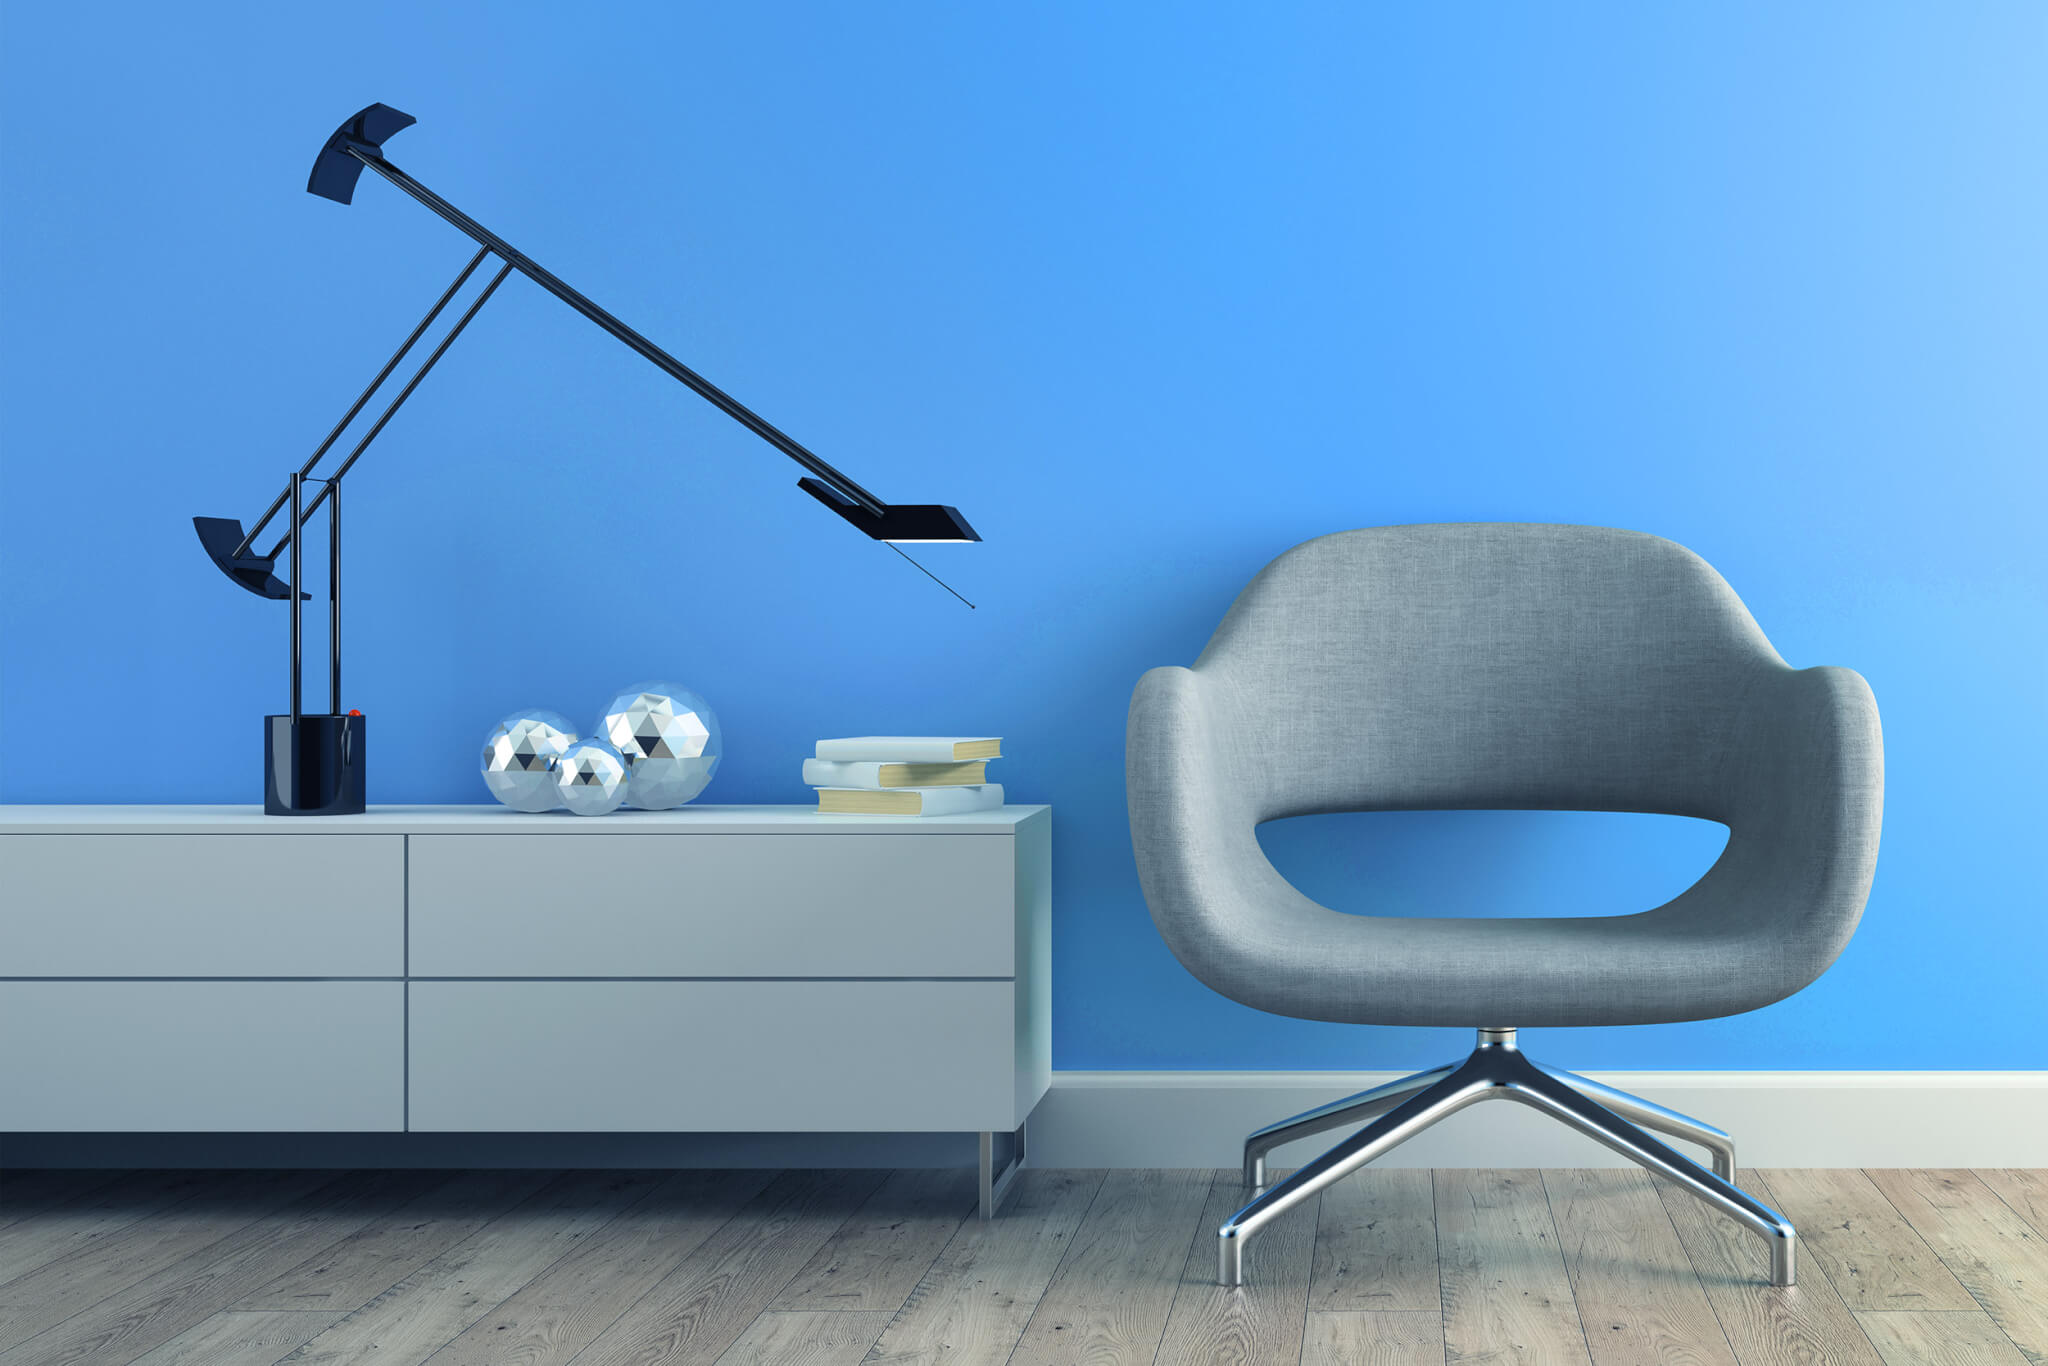 http://addison.bold-themes.com/main-demo/wp-content/uploads/sites/3/2017/05/image-chair-blue-wall.jpg